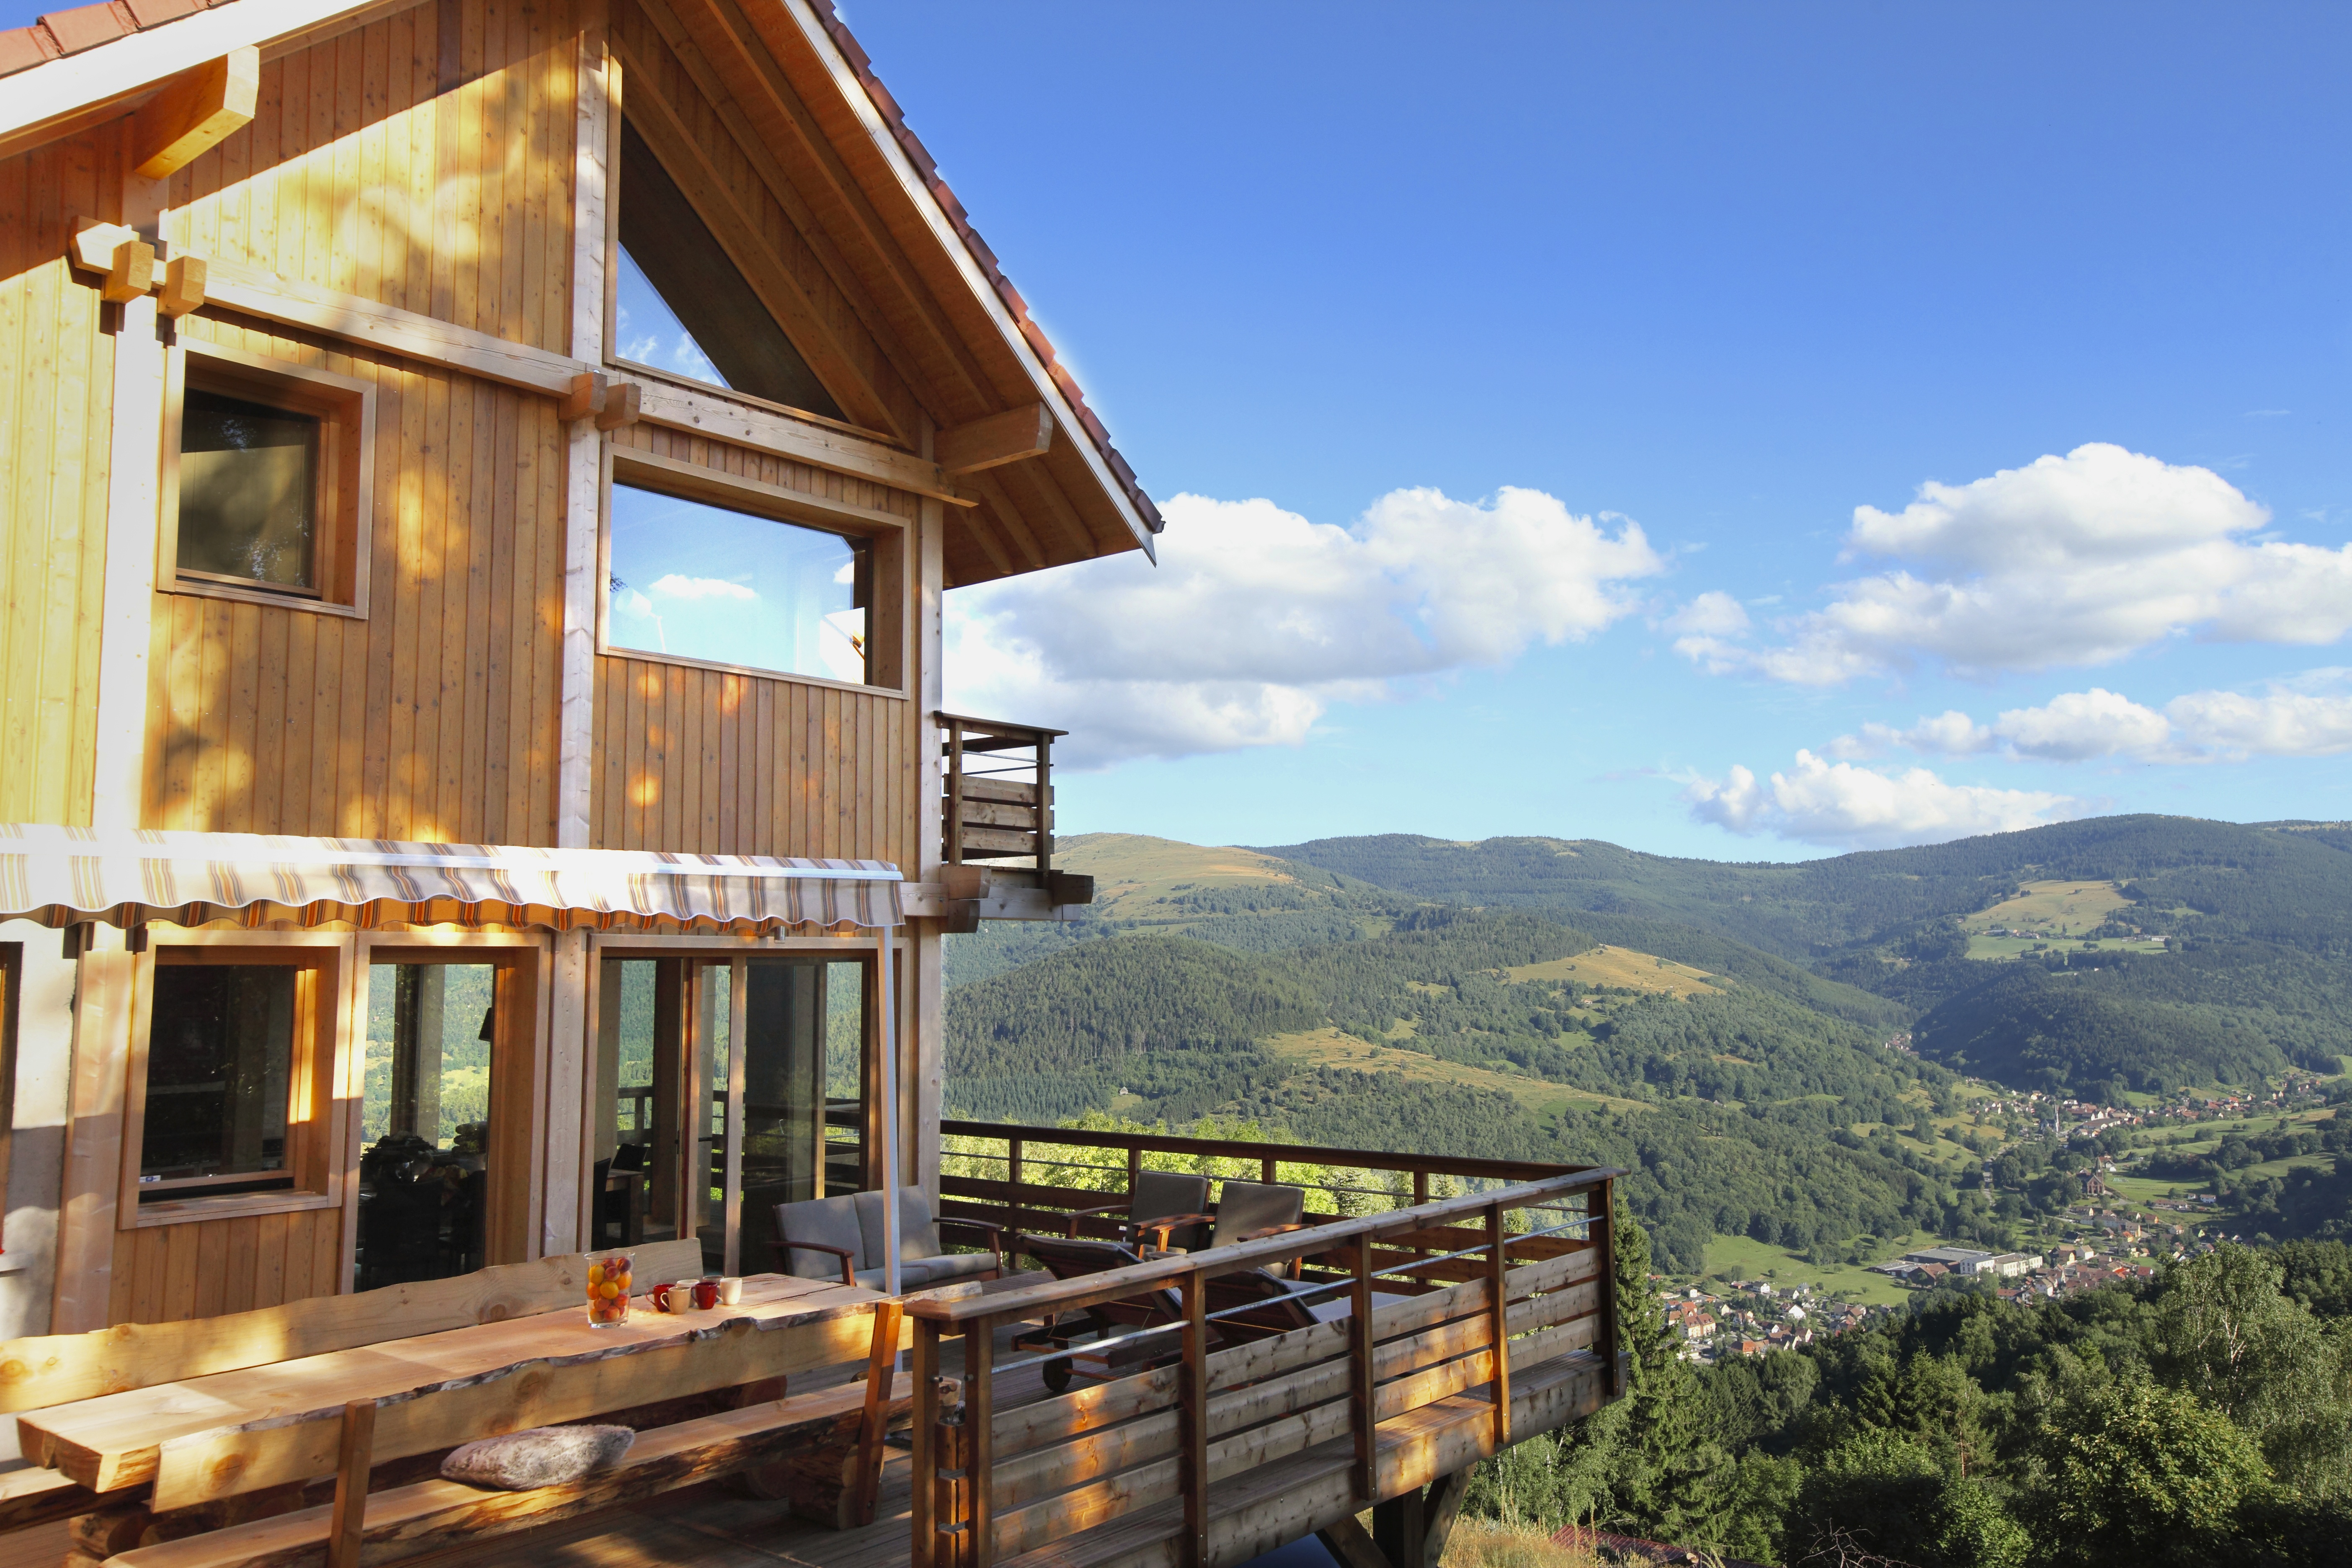 La Marcairie Grand Chalet Spa De Luxe 5 Etoiles Chalets For Rent